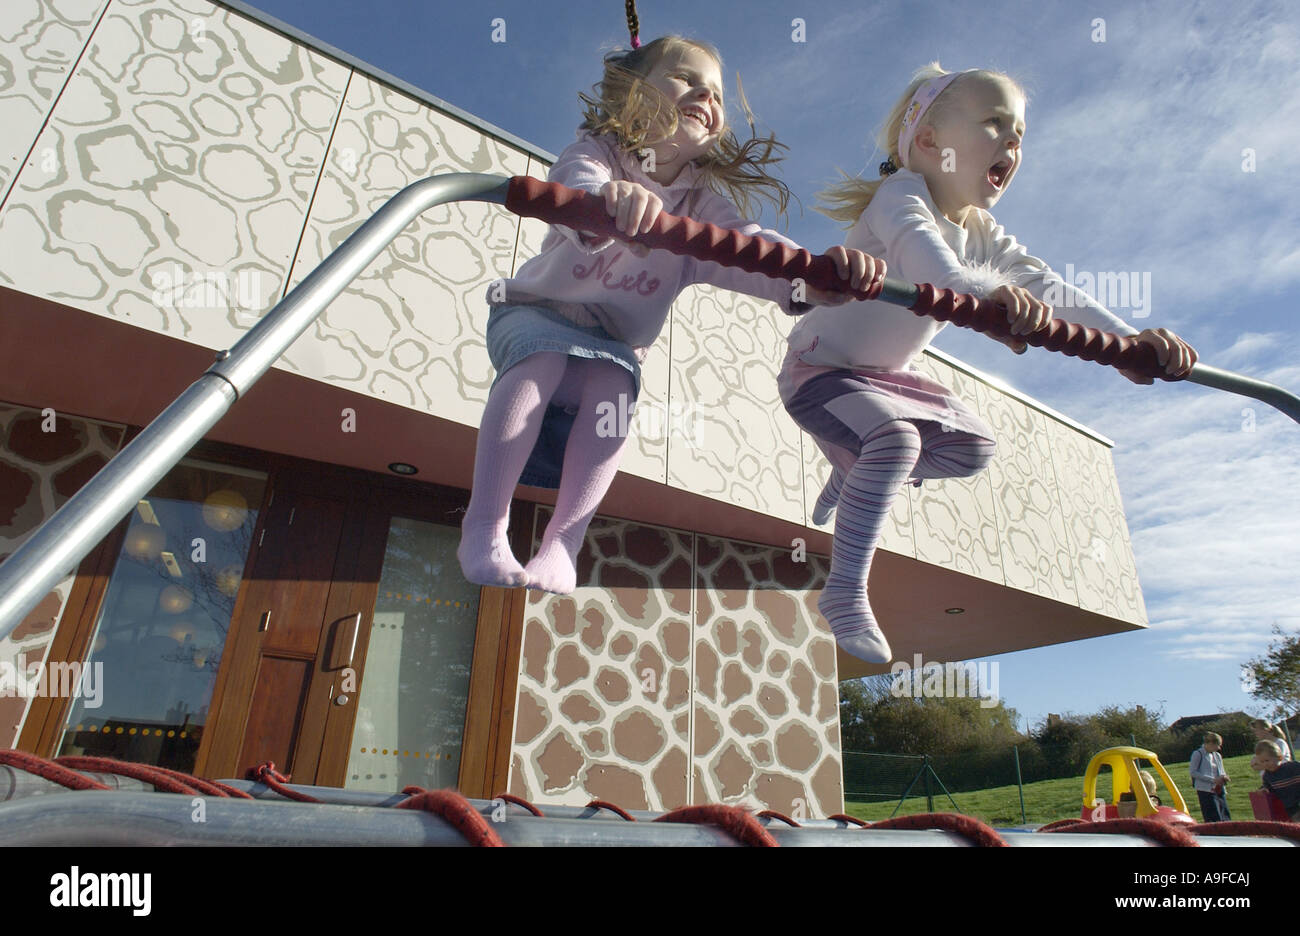 Two four 4 year old girls bounce with glee on a trampoline - Stock Image